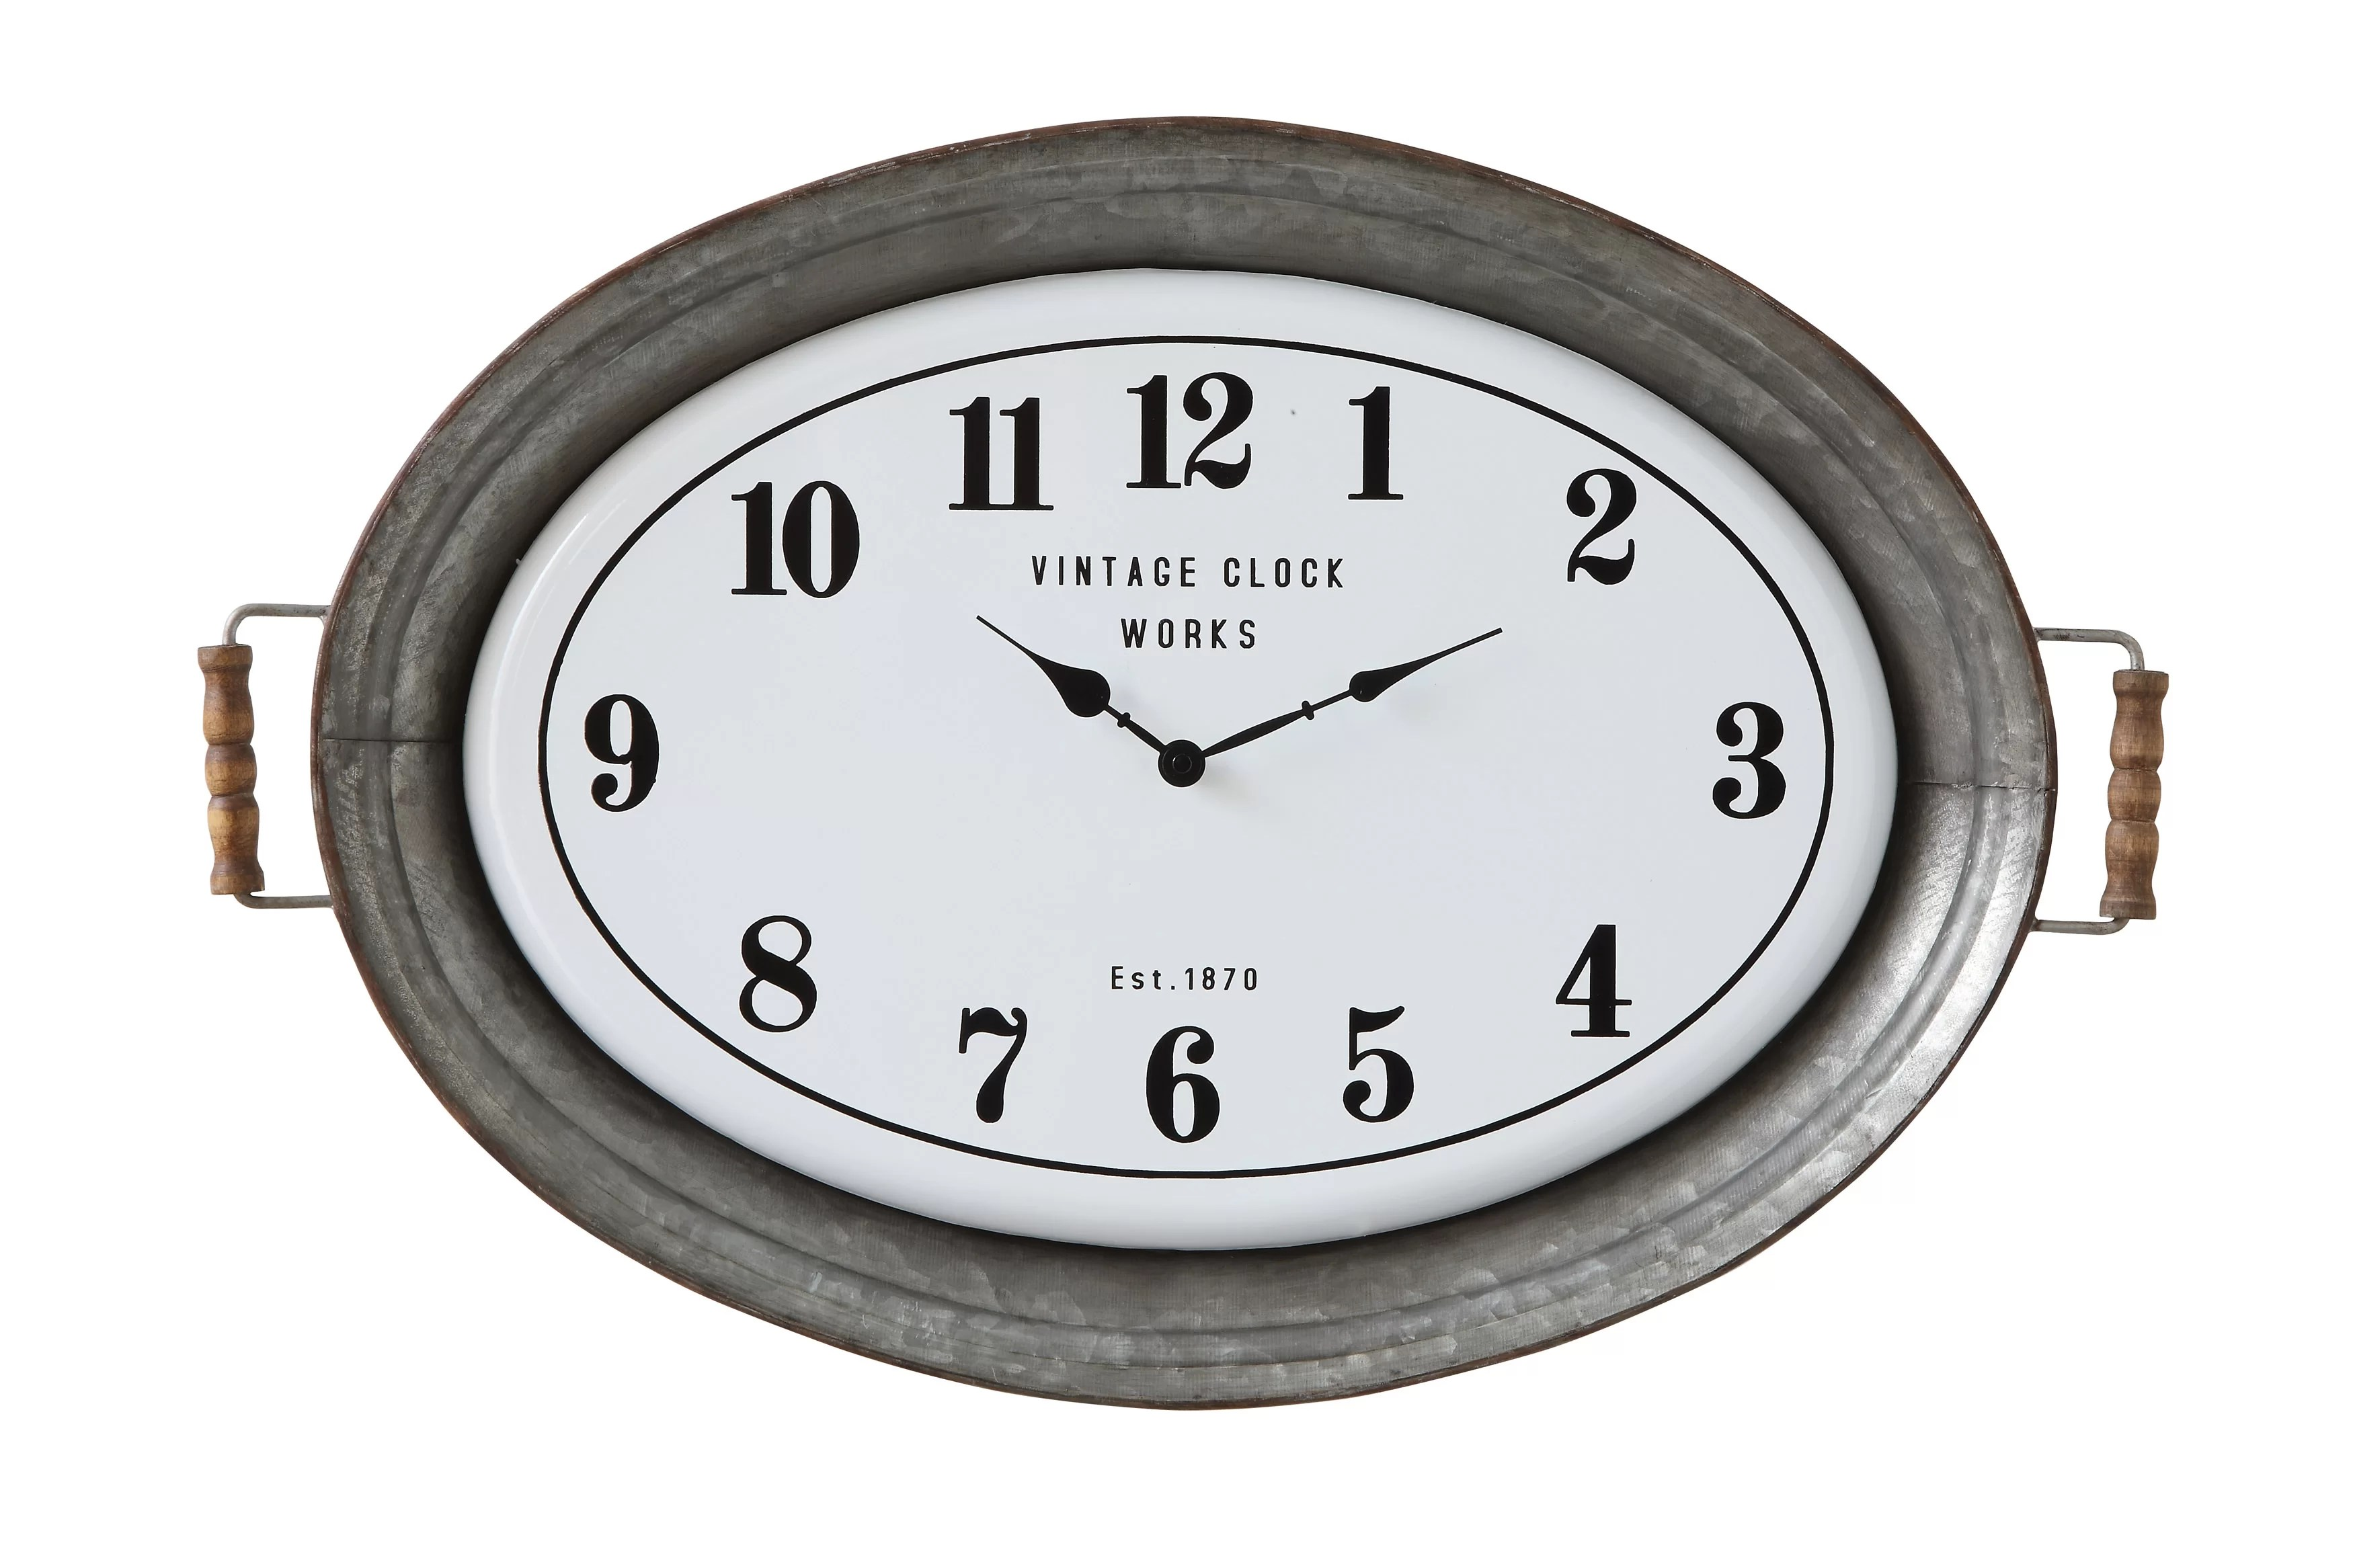 Oval Clock Face Stef Oval Metal Wall Clock With Serving Tray Design